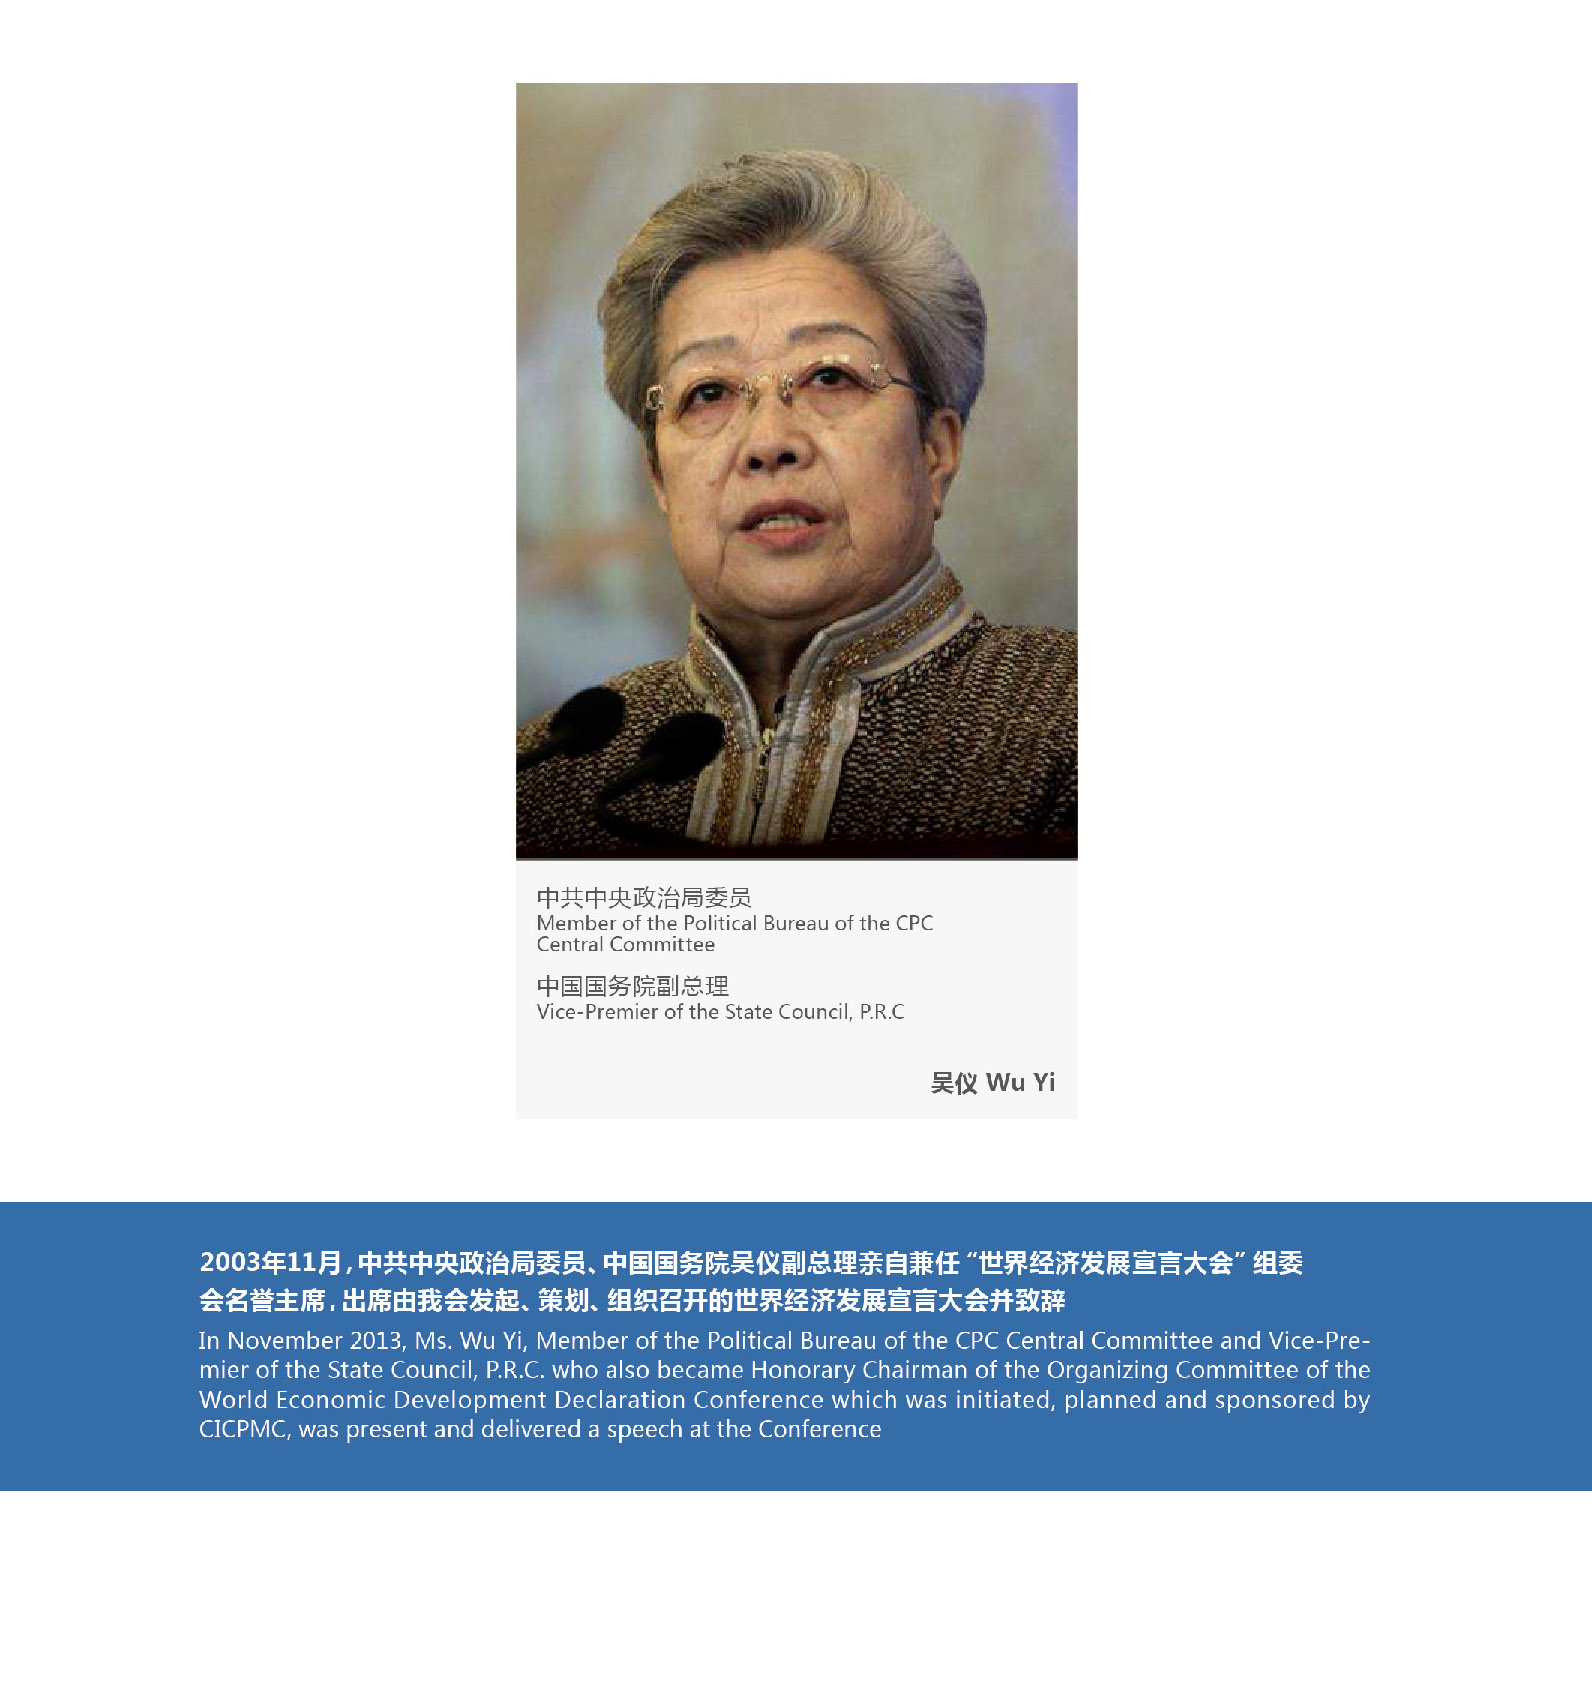 In November 2013, Ms. Wu Yi, Member of the Political Bureau of the CPC Central Committee and Vice-Premier of the State Council, P.R.C. who also became Honorary Chairman of the Organizing Committee of the World Economic Development Declaration Conference which was initiated, planned and sponsored by